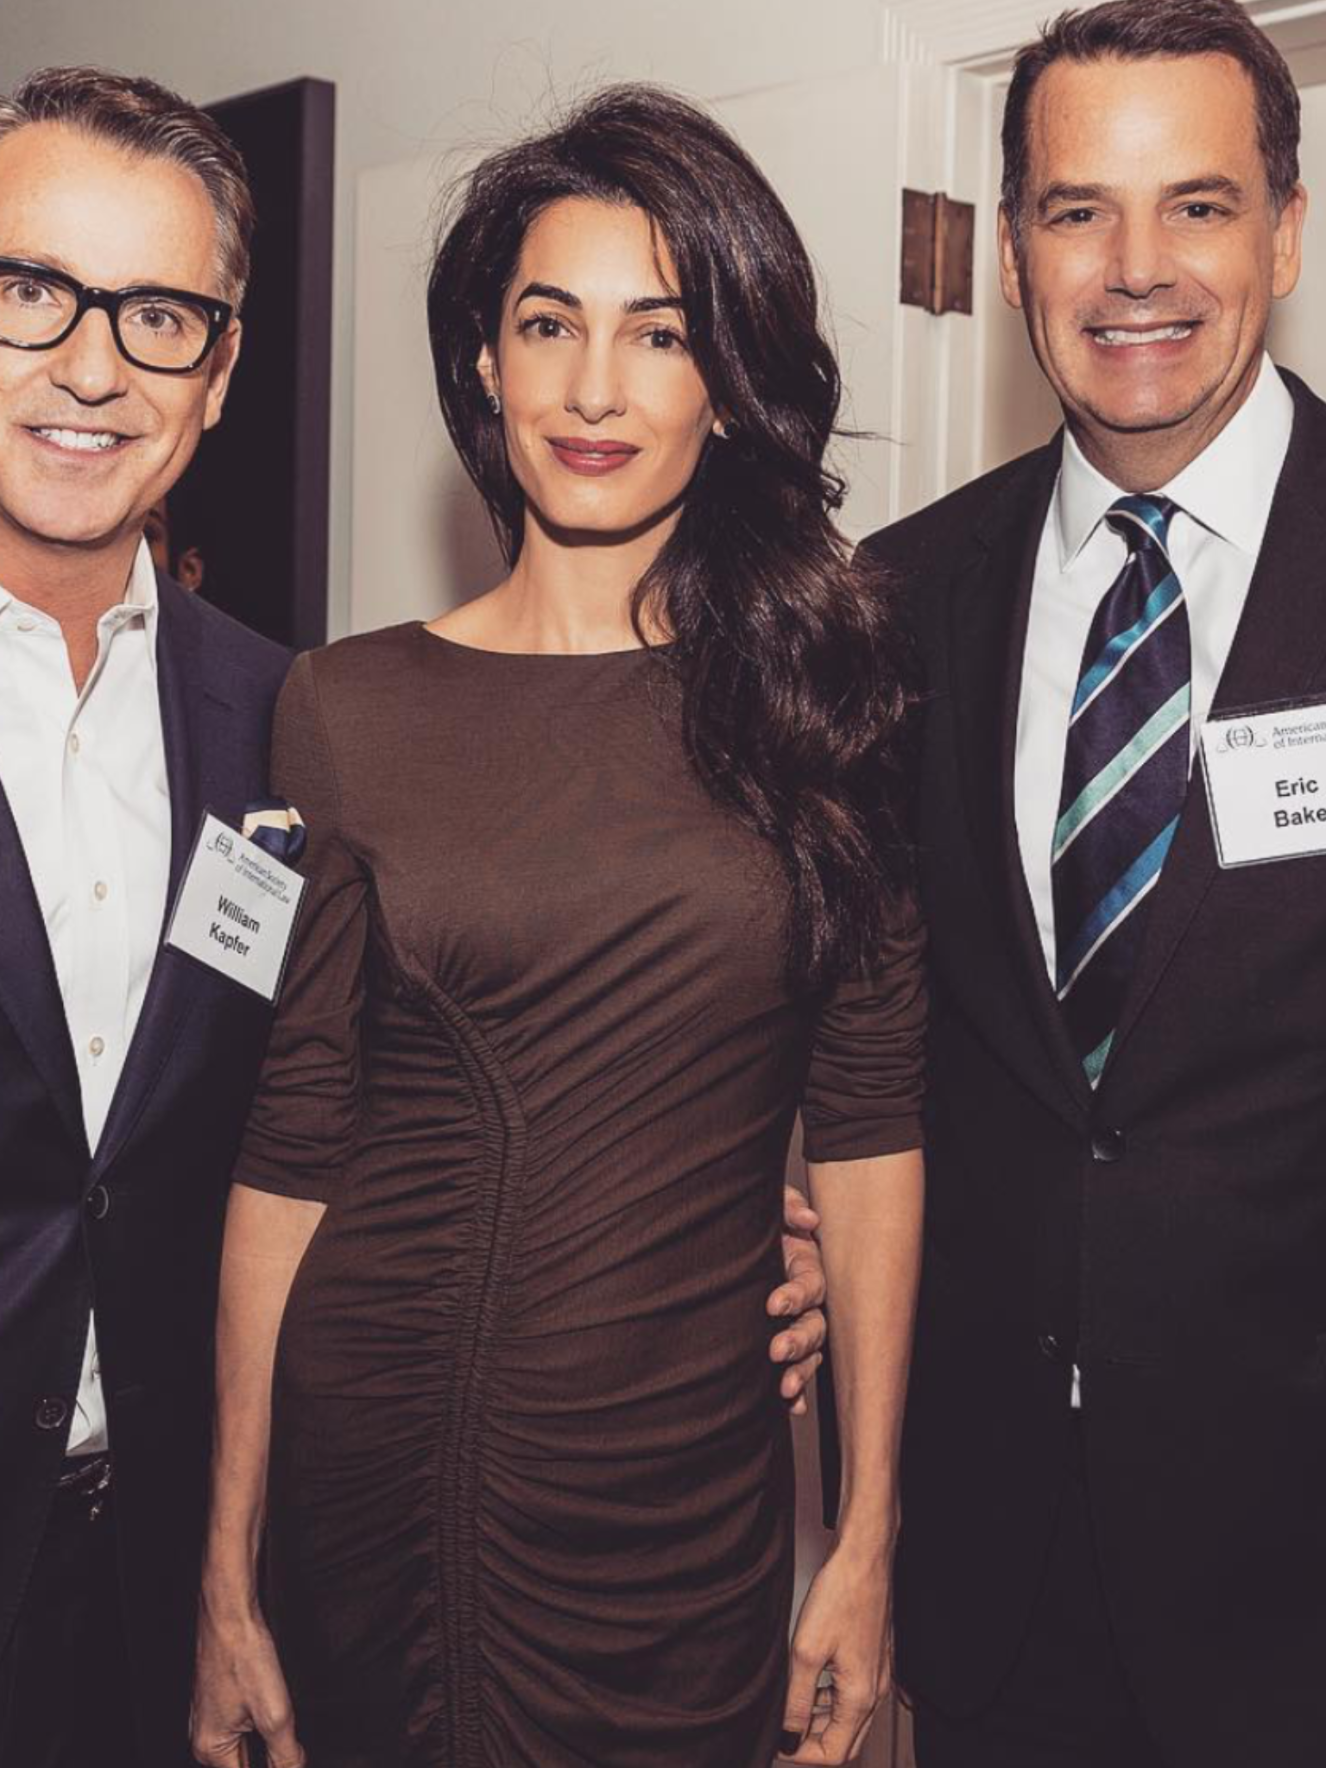 Amal Clooney at the American Society of International Law in